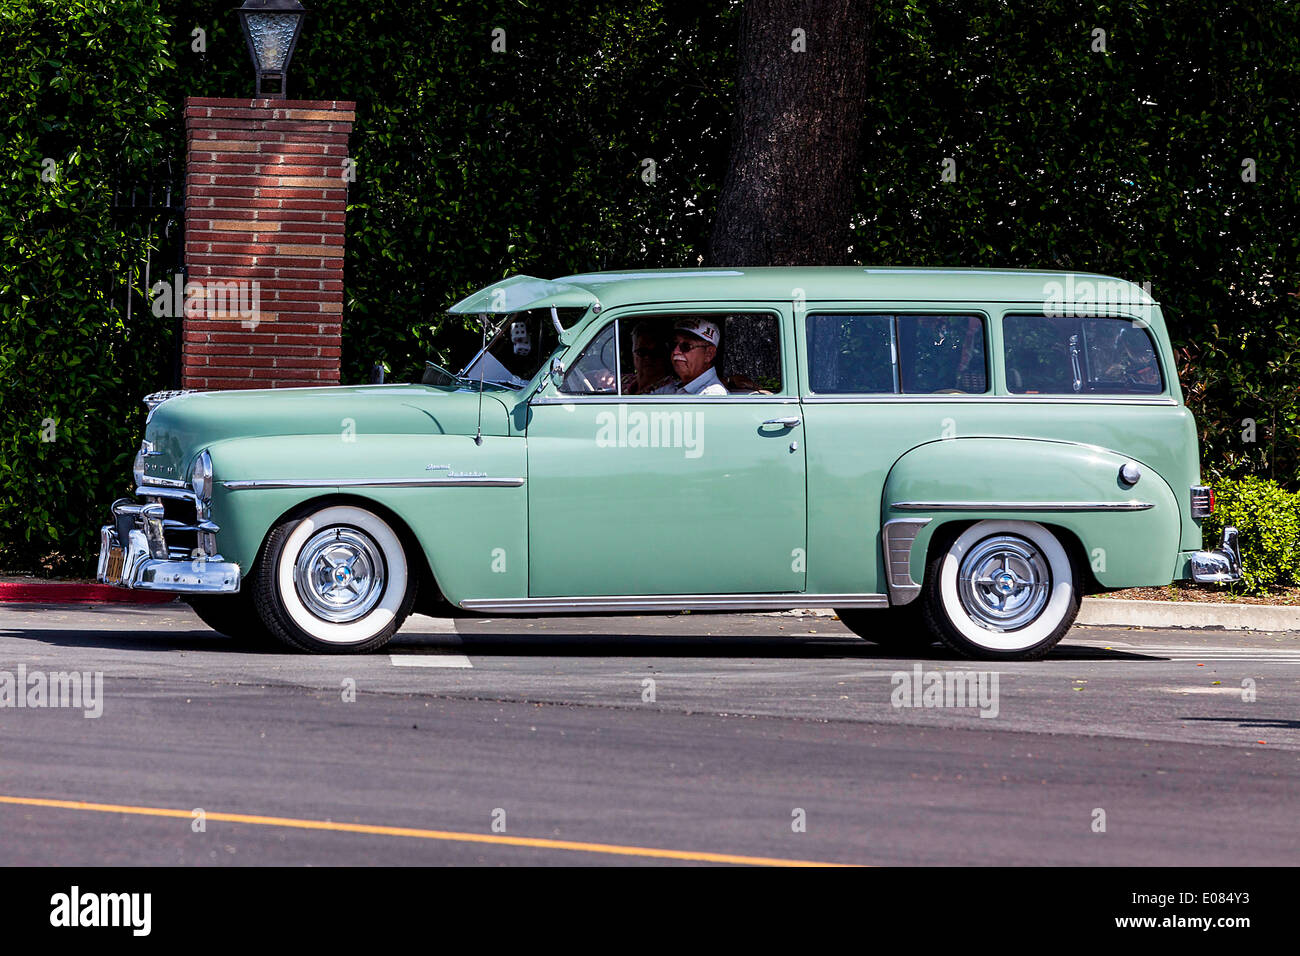 hight resolution of a 1950 plymouth suburban station wagon